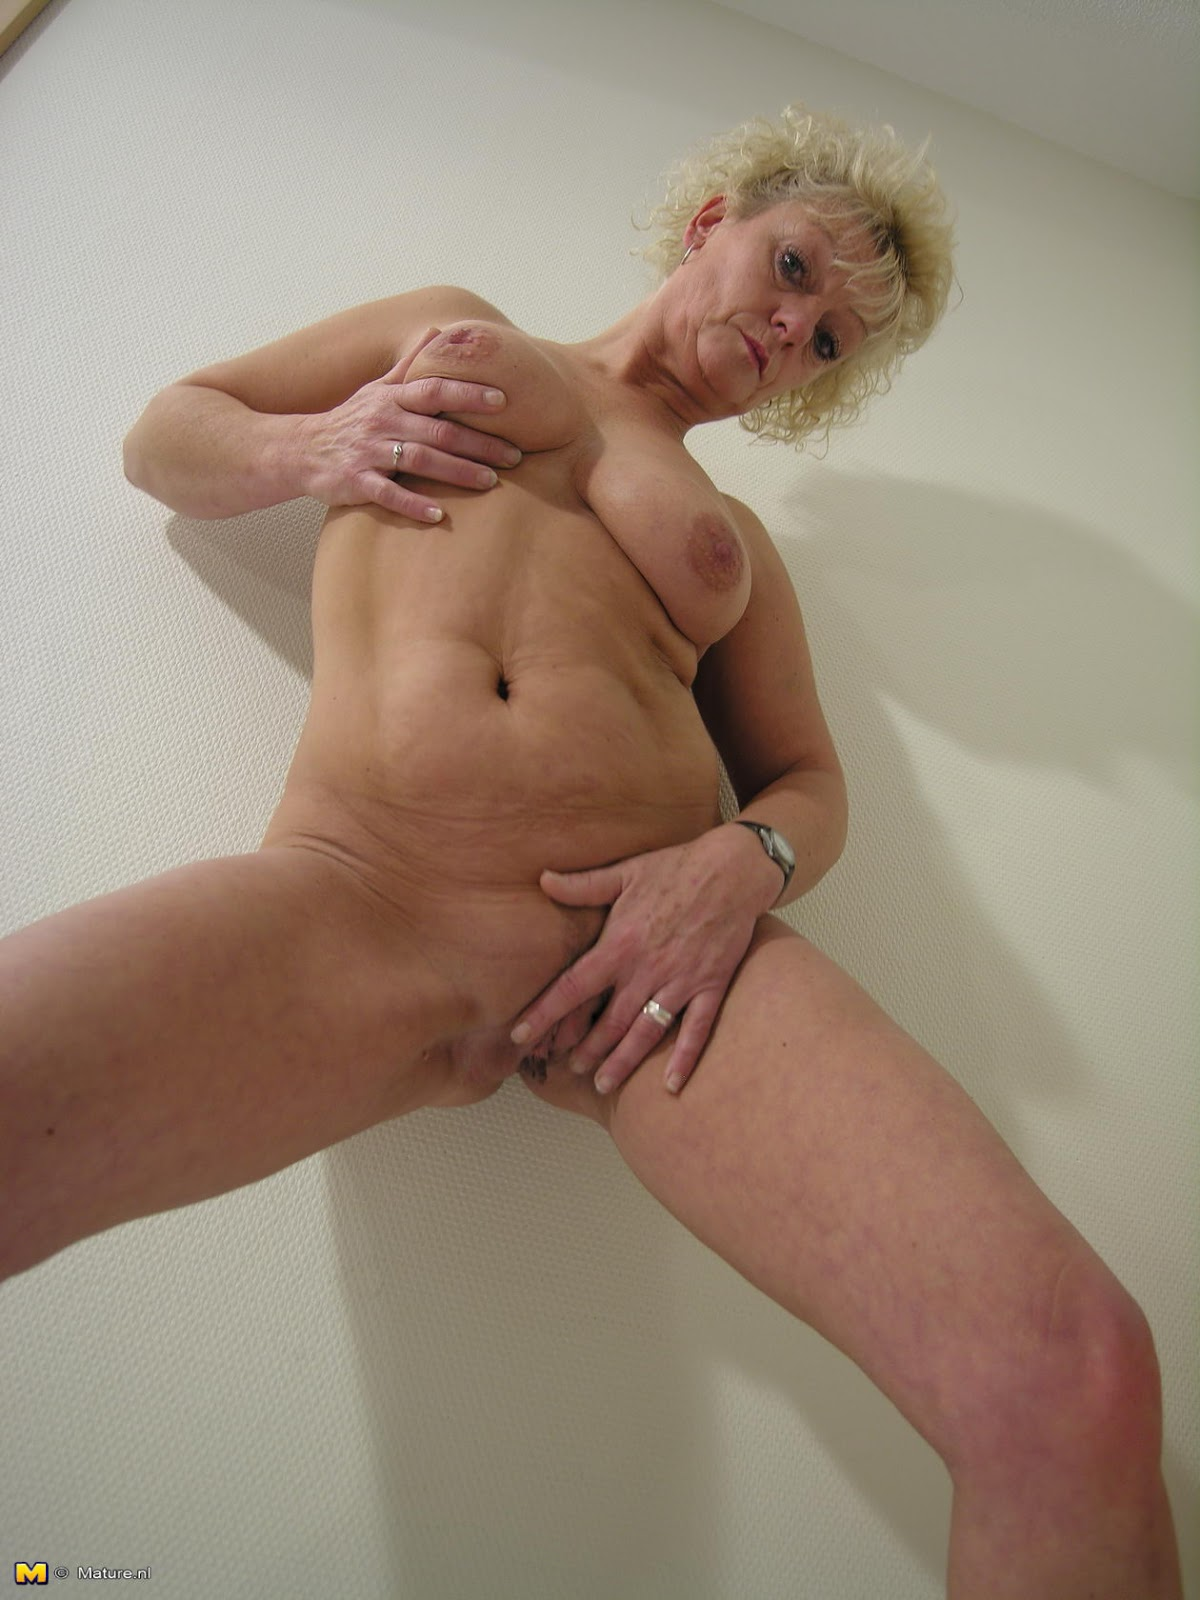 You were naughty naked mature woman means not